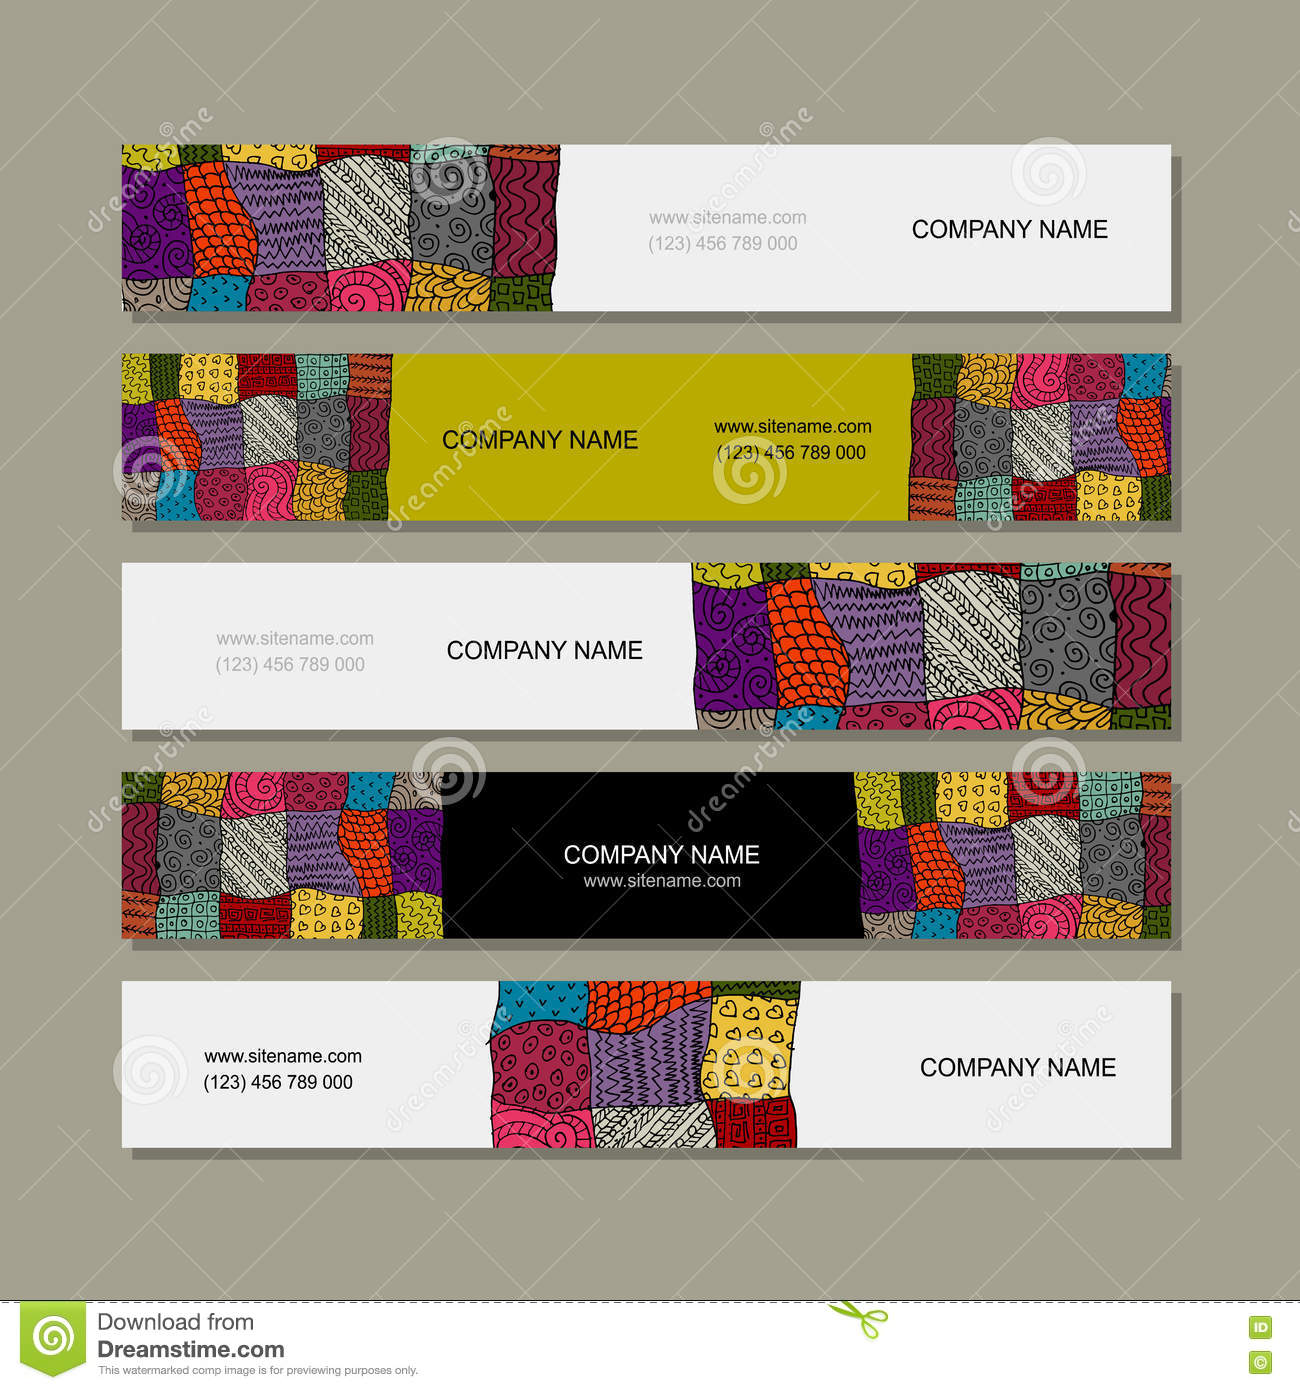 Business card collection images free business cards business card collection patchwork carpet design stock vector business card collection patchwork carpet design magicingreecefo images magicingreecefo Image collections